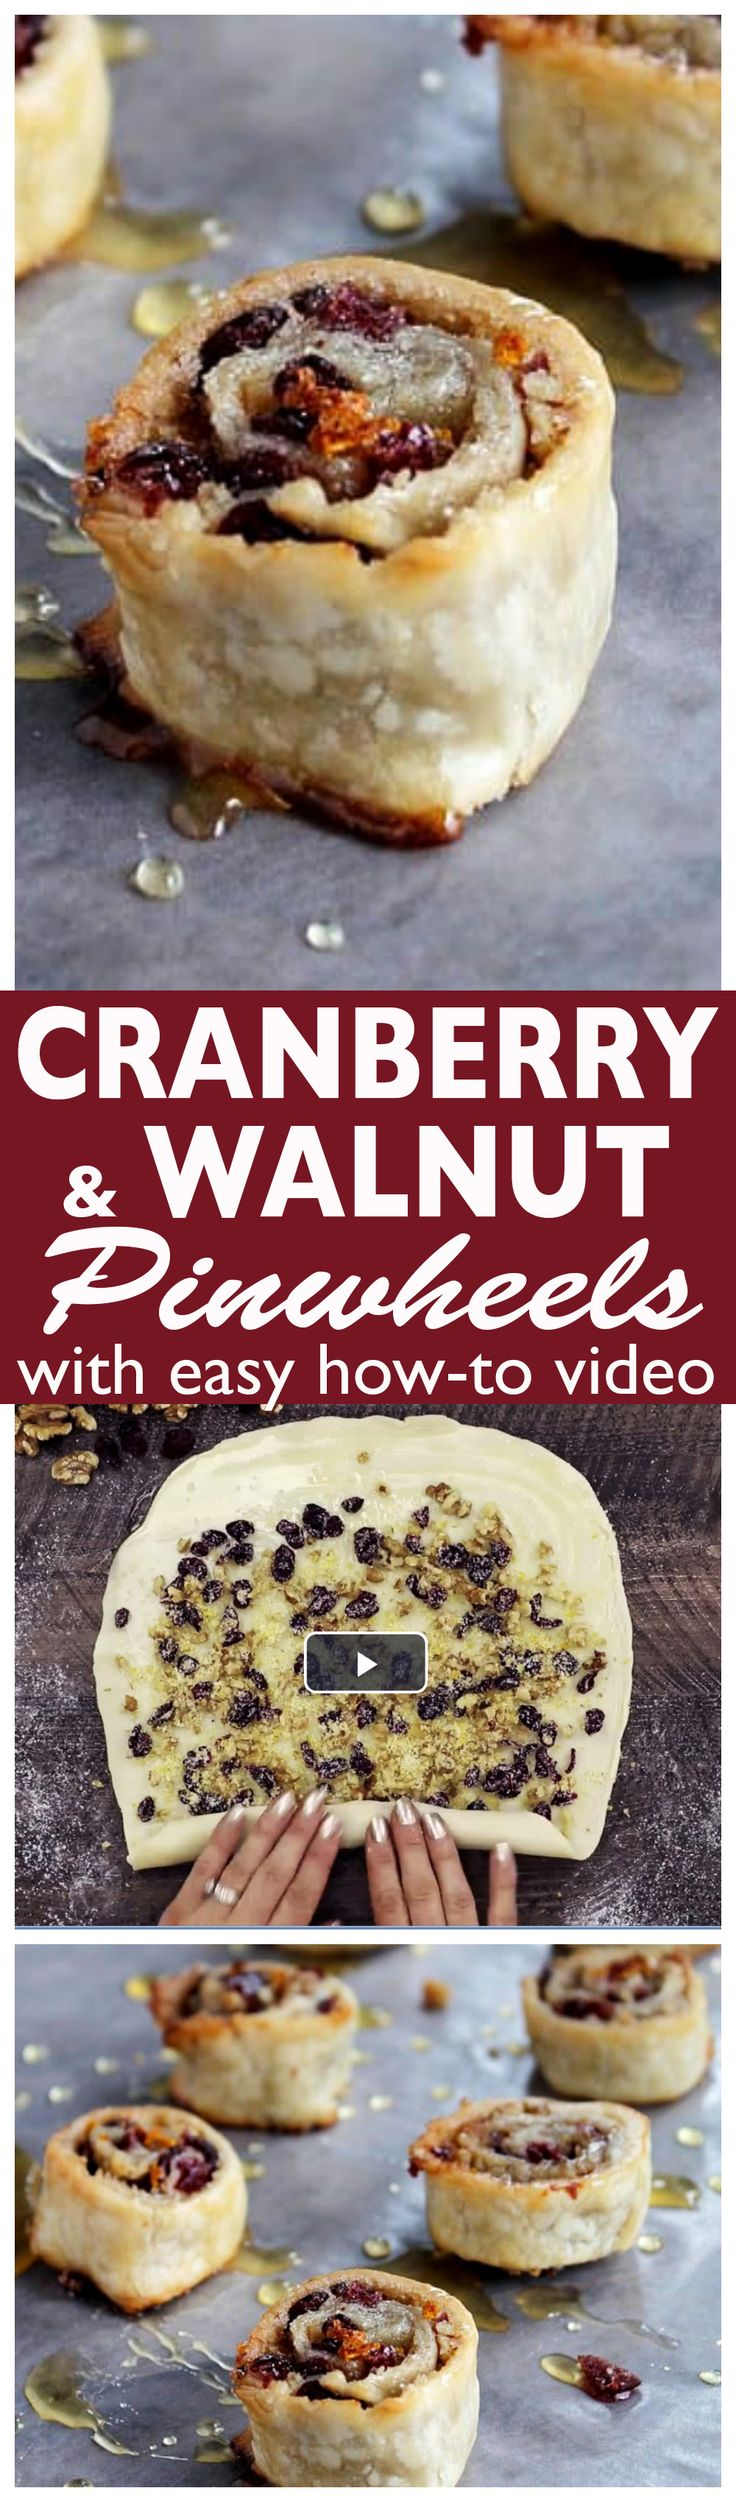 Cranberry and Walnut Pinwheels - Pie dough wrapped around a rich cranberry & walnut filling!